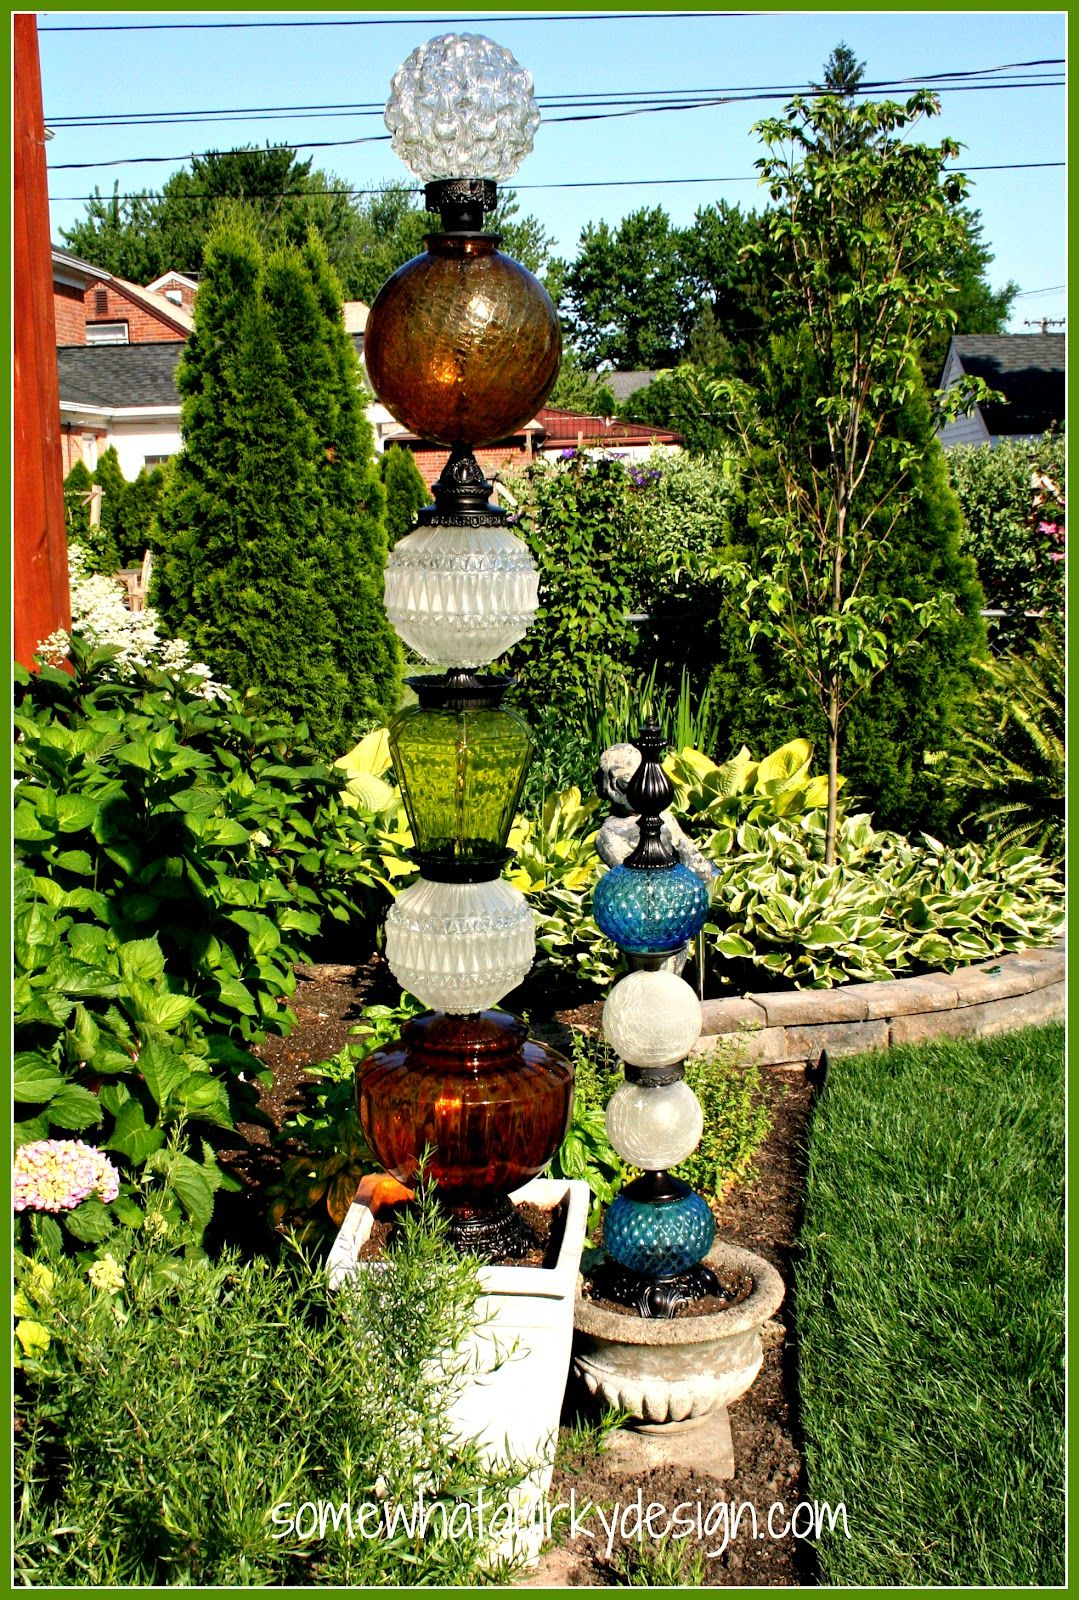 Building Glass Towers Garden Art Projects Garden Art Diy